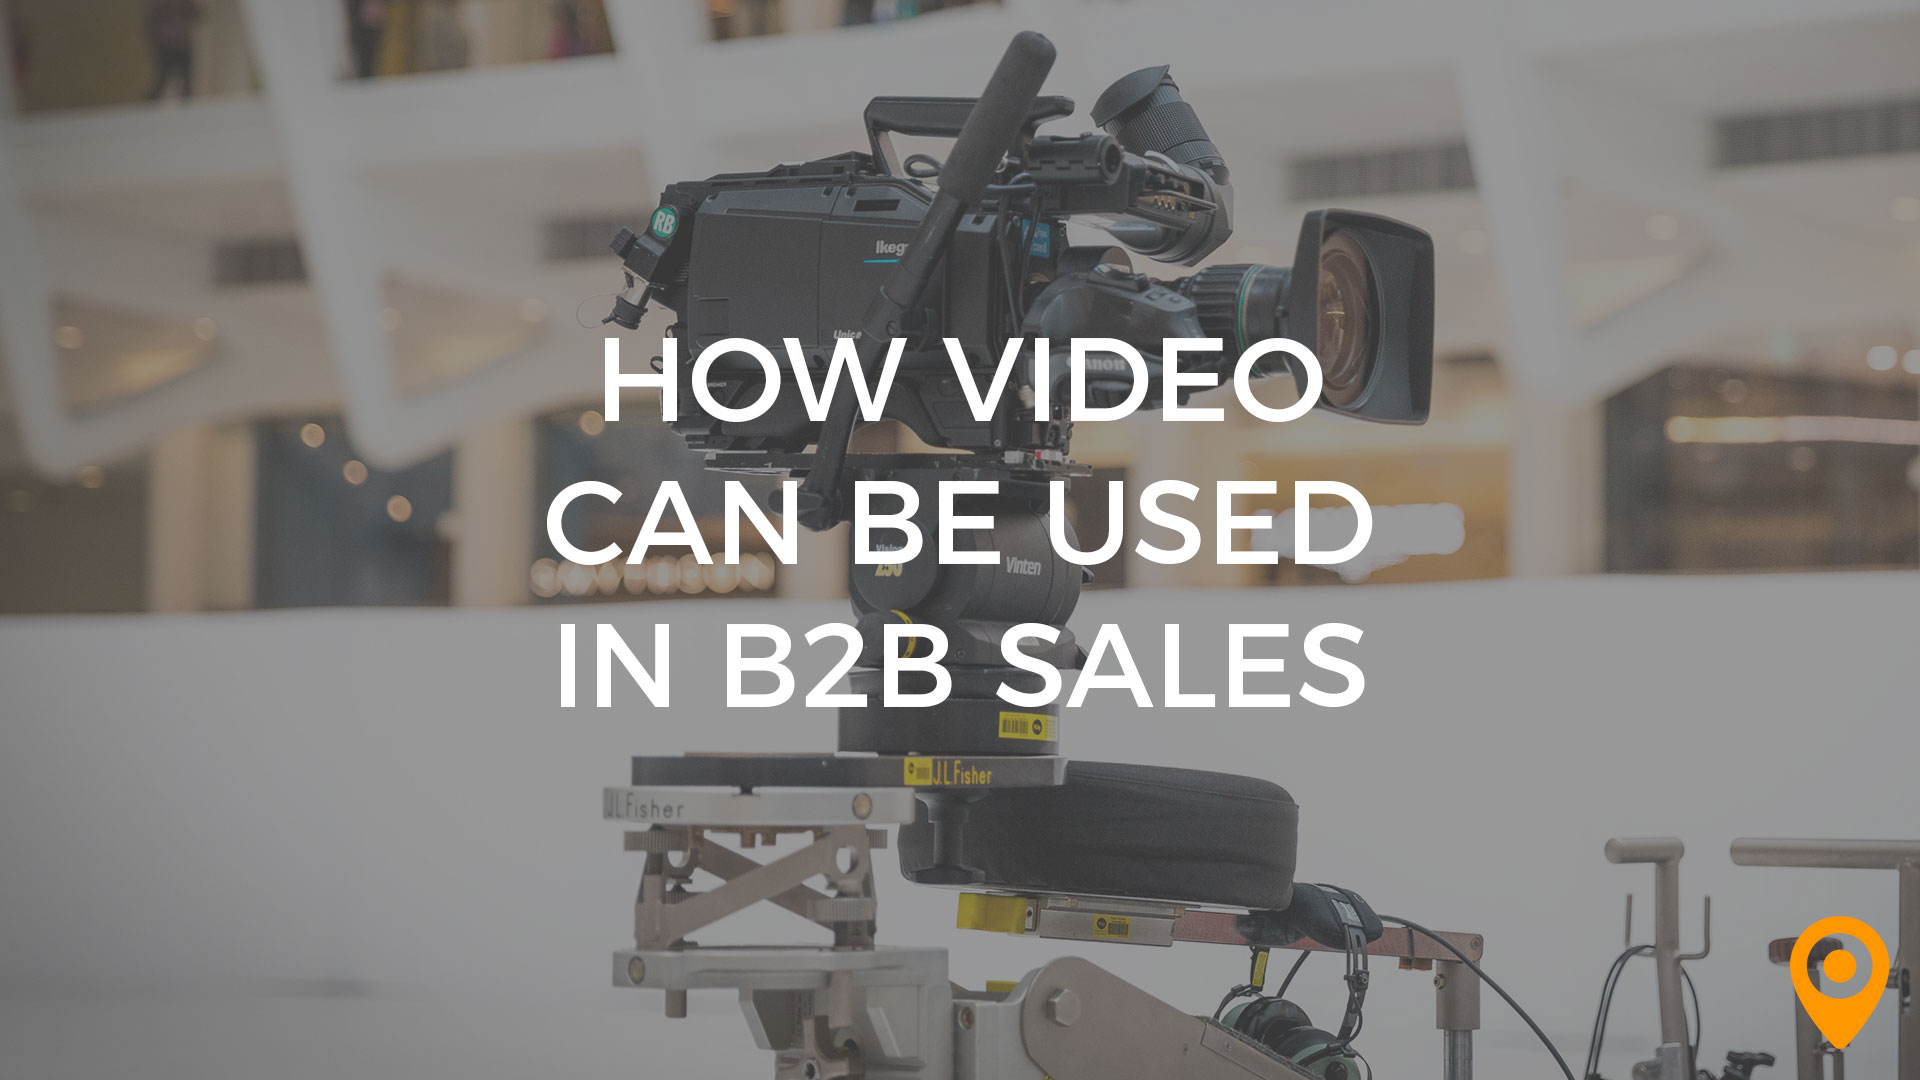 How Video Can Be Used in B2B Sales